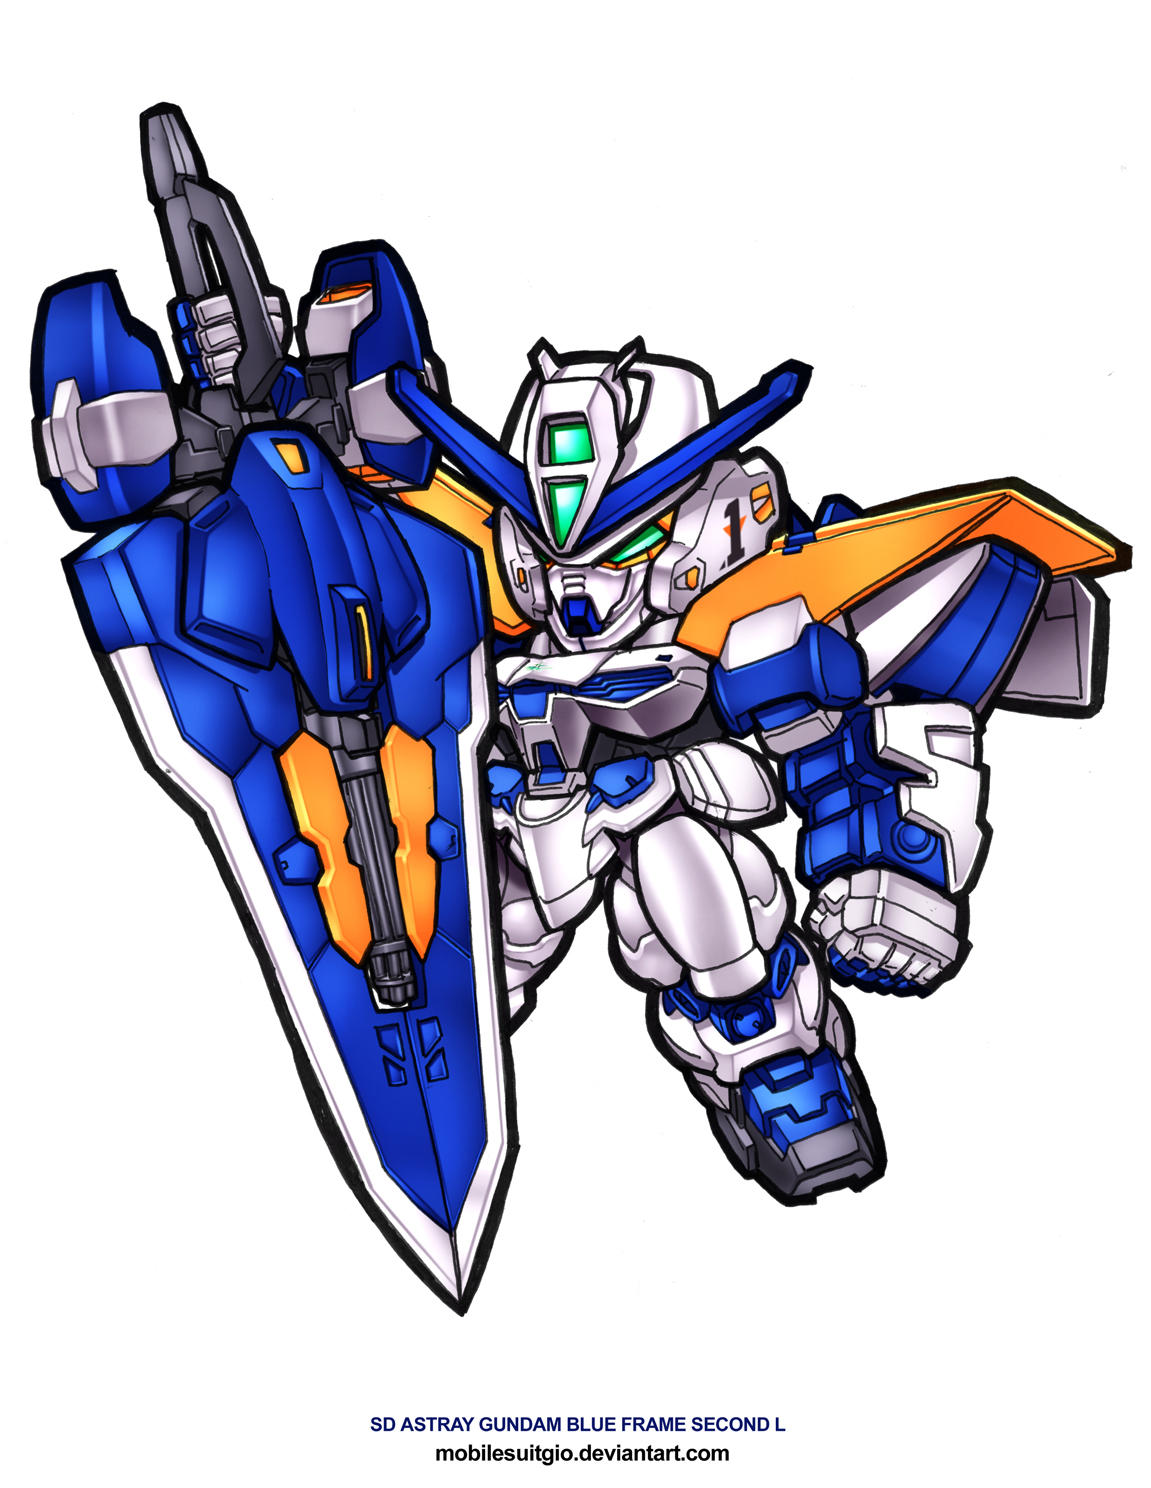 Sd Astray Blue Frame Second L By Mobilesuitgio On Deviantart Gundam Revise